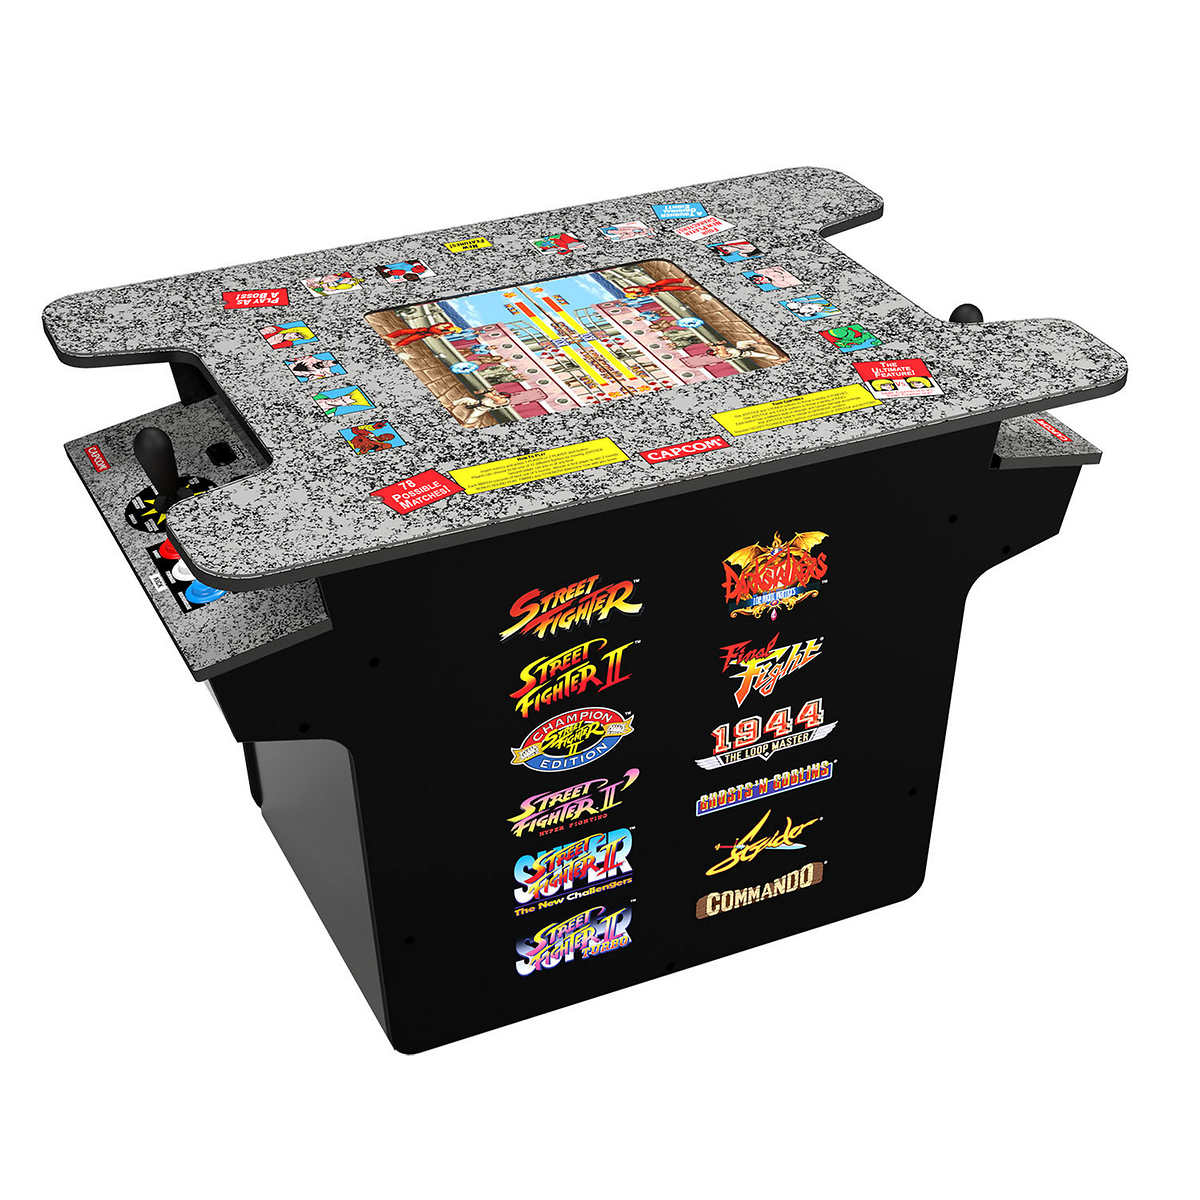 Arcade1up Street Fighter Deluxe 12 In 1 Arcade Game Table